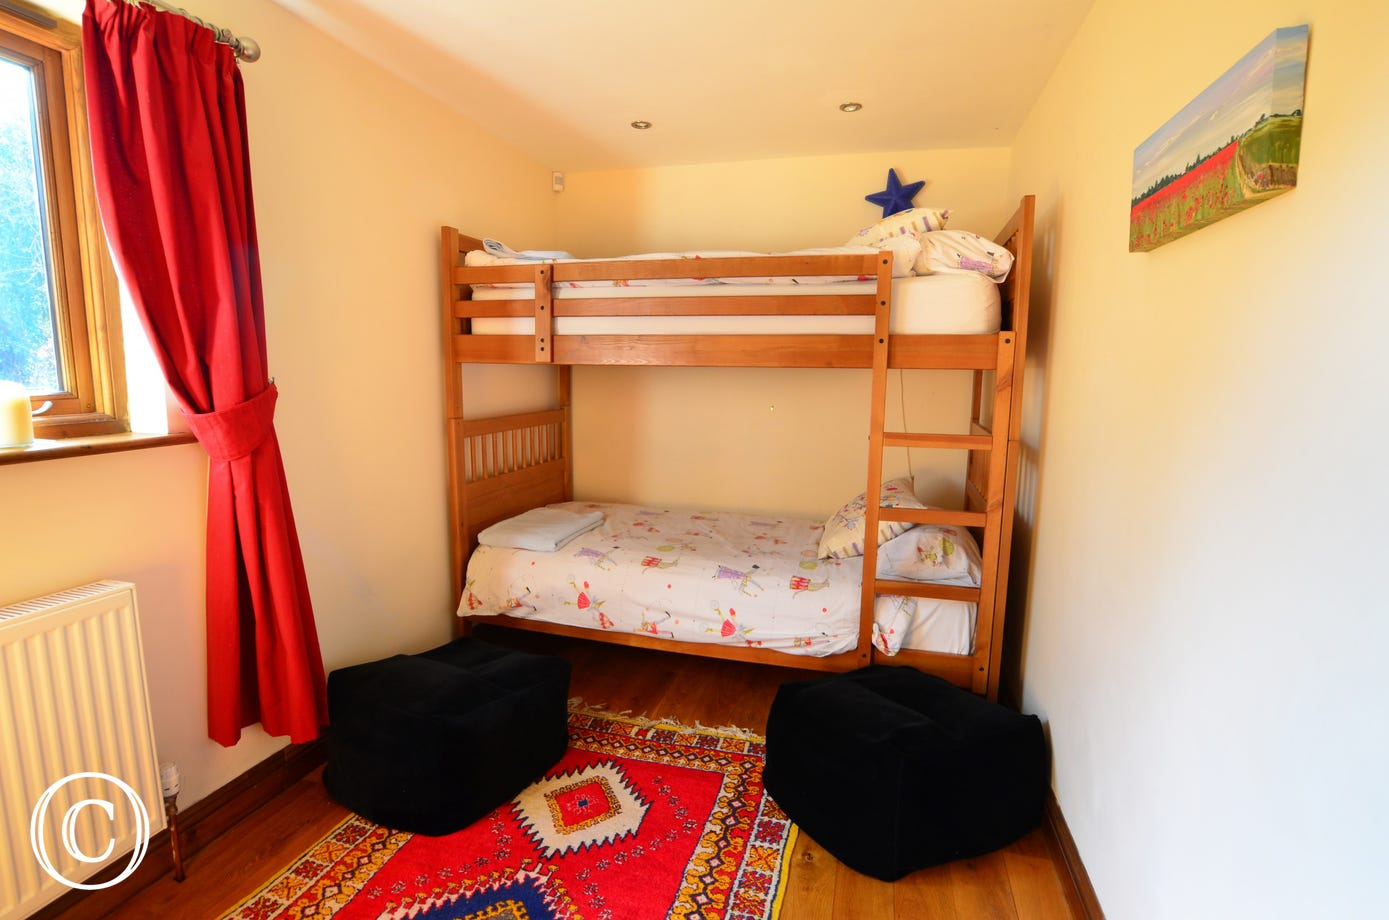 The double room is on the ground floor and has bunks beds,  bright colourful curtains and a rug, the perfect room for younger members of the family